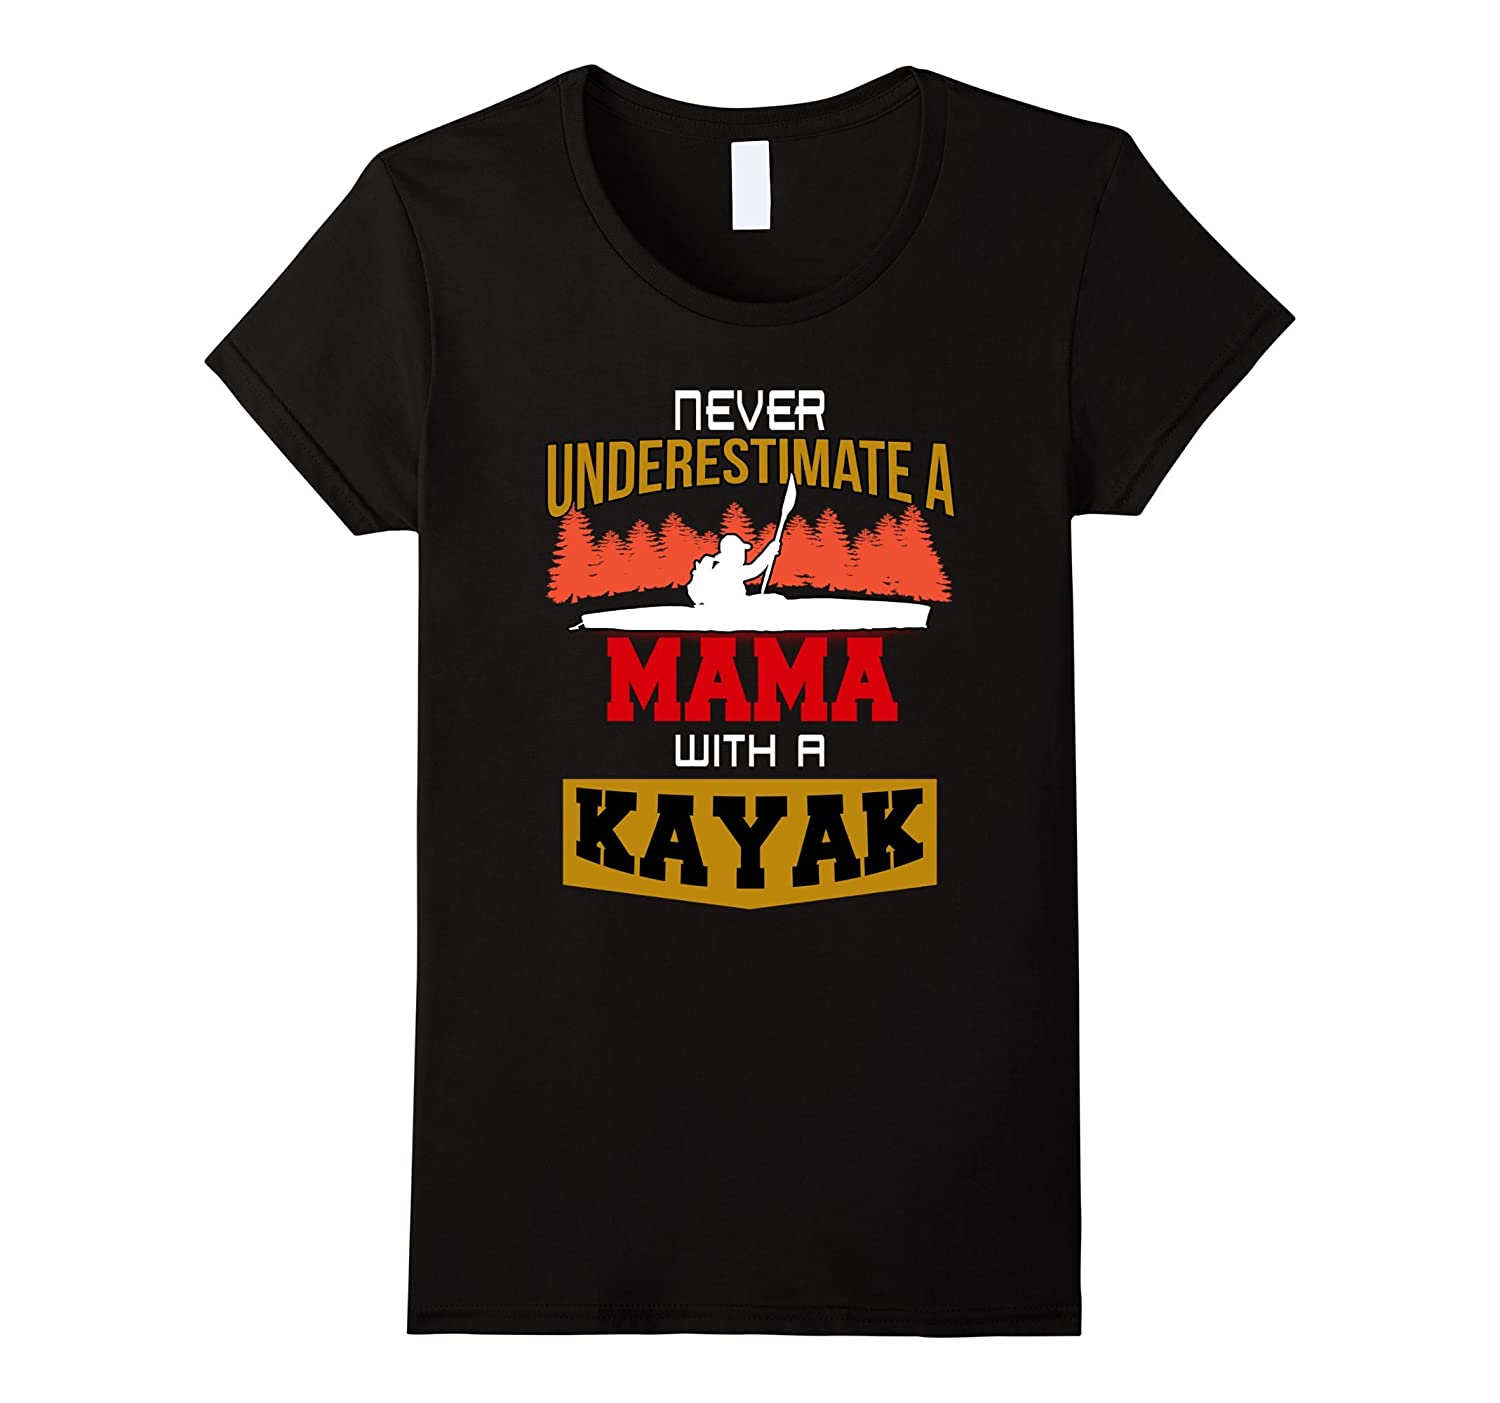 Never Underestimate a Mama with a kayak T-shirt